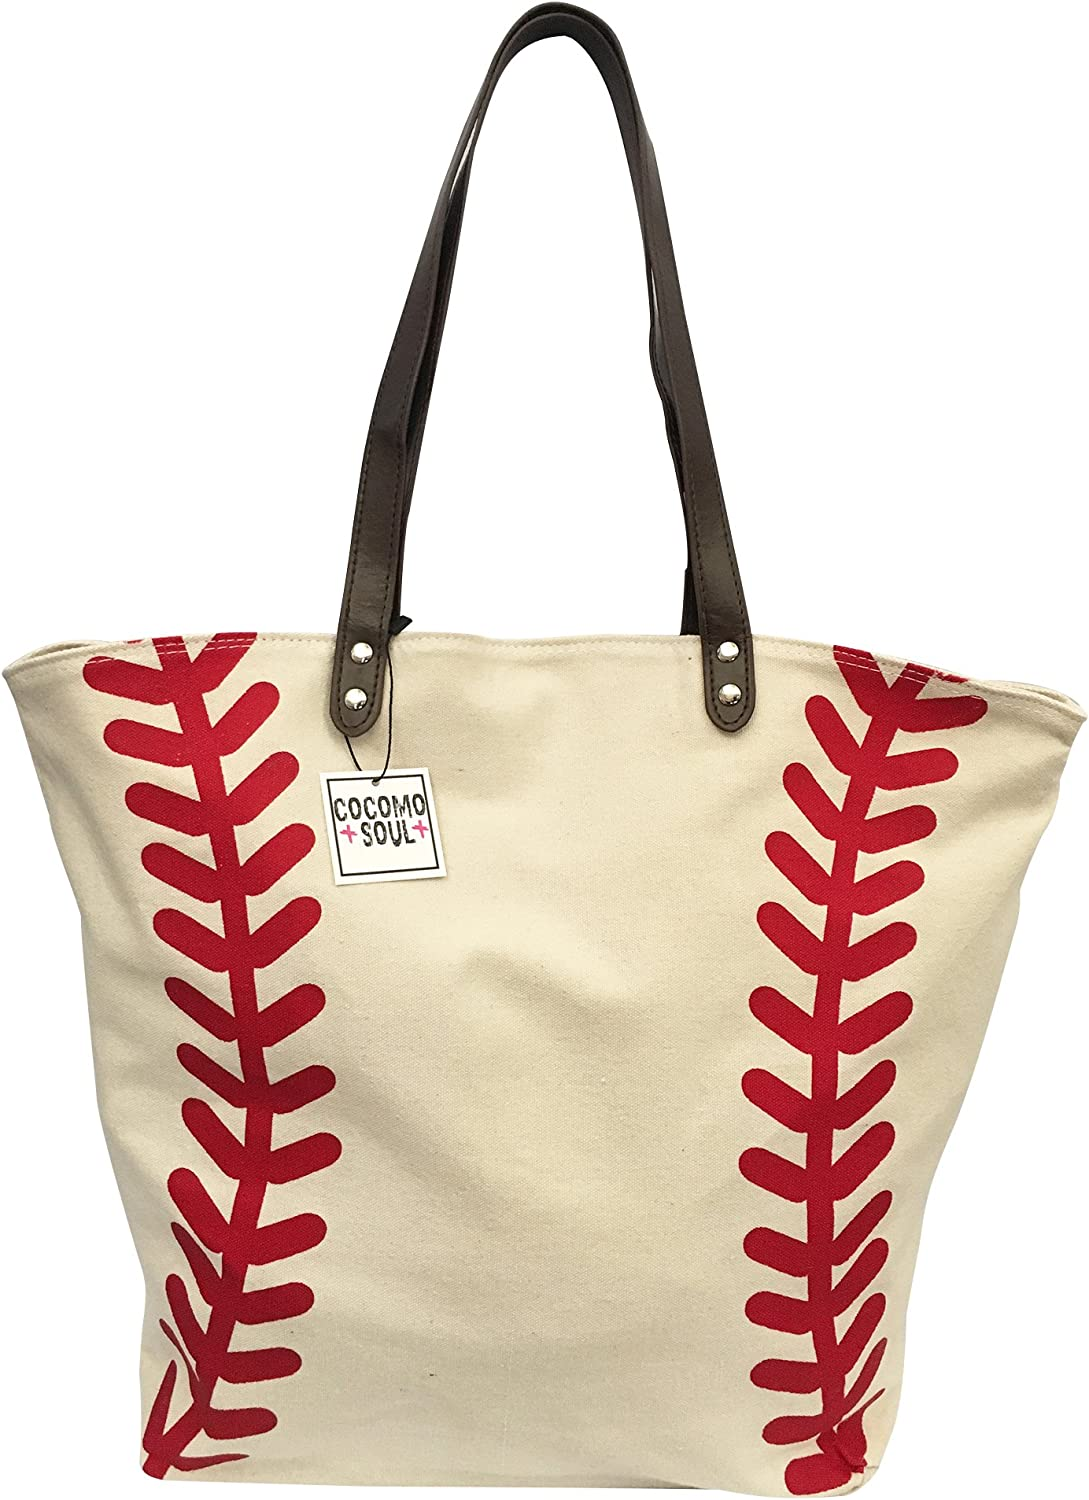 Baseball Canvas Tote Bag Handbag Large Oversize Shopping Bag Travel Bag Baseball Purse Sports Bag 20 x 17 Inches Cocomo Soul